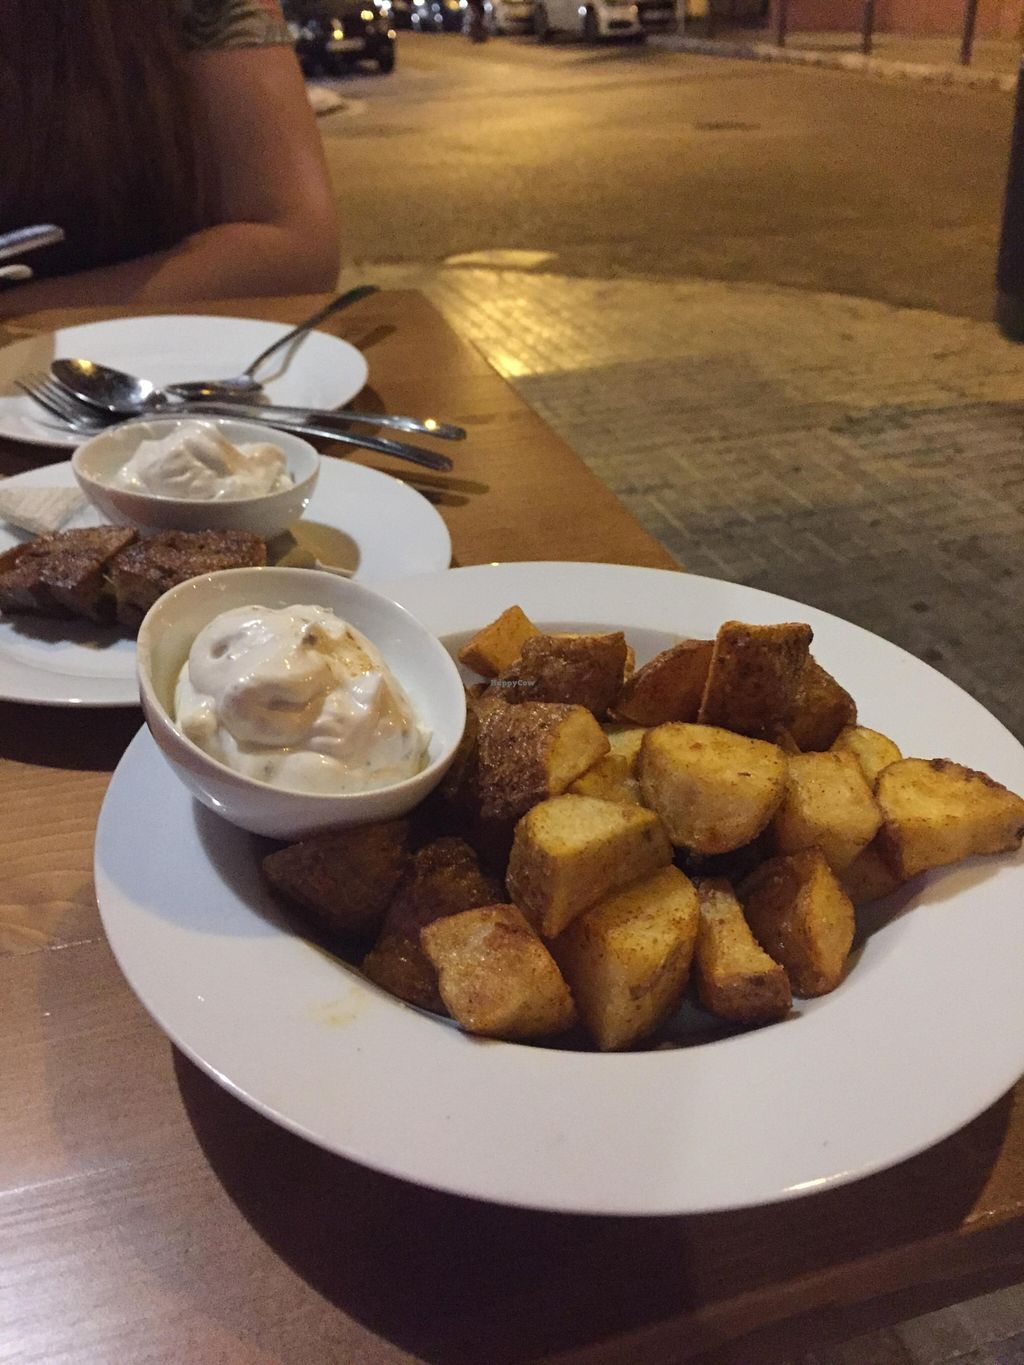 """Photo of CLOSED: La Golondrina  by <a href=""""/members/profile/Littlething"""">Littlething</a> <br/>Potato wedges <br/> November 16, 2015  - <a href='/contact/abuse/image/52670/125137'>Report</a>"""